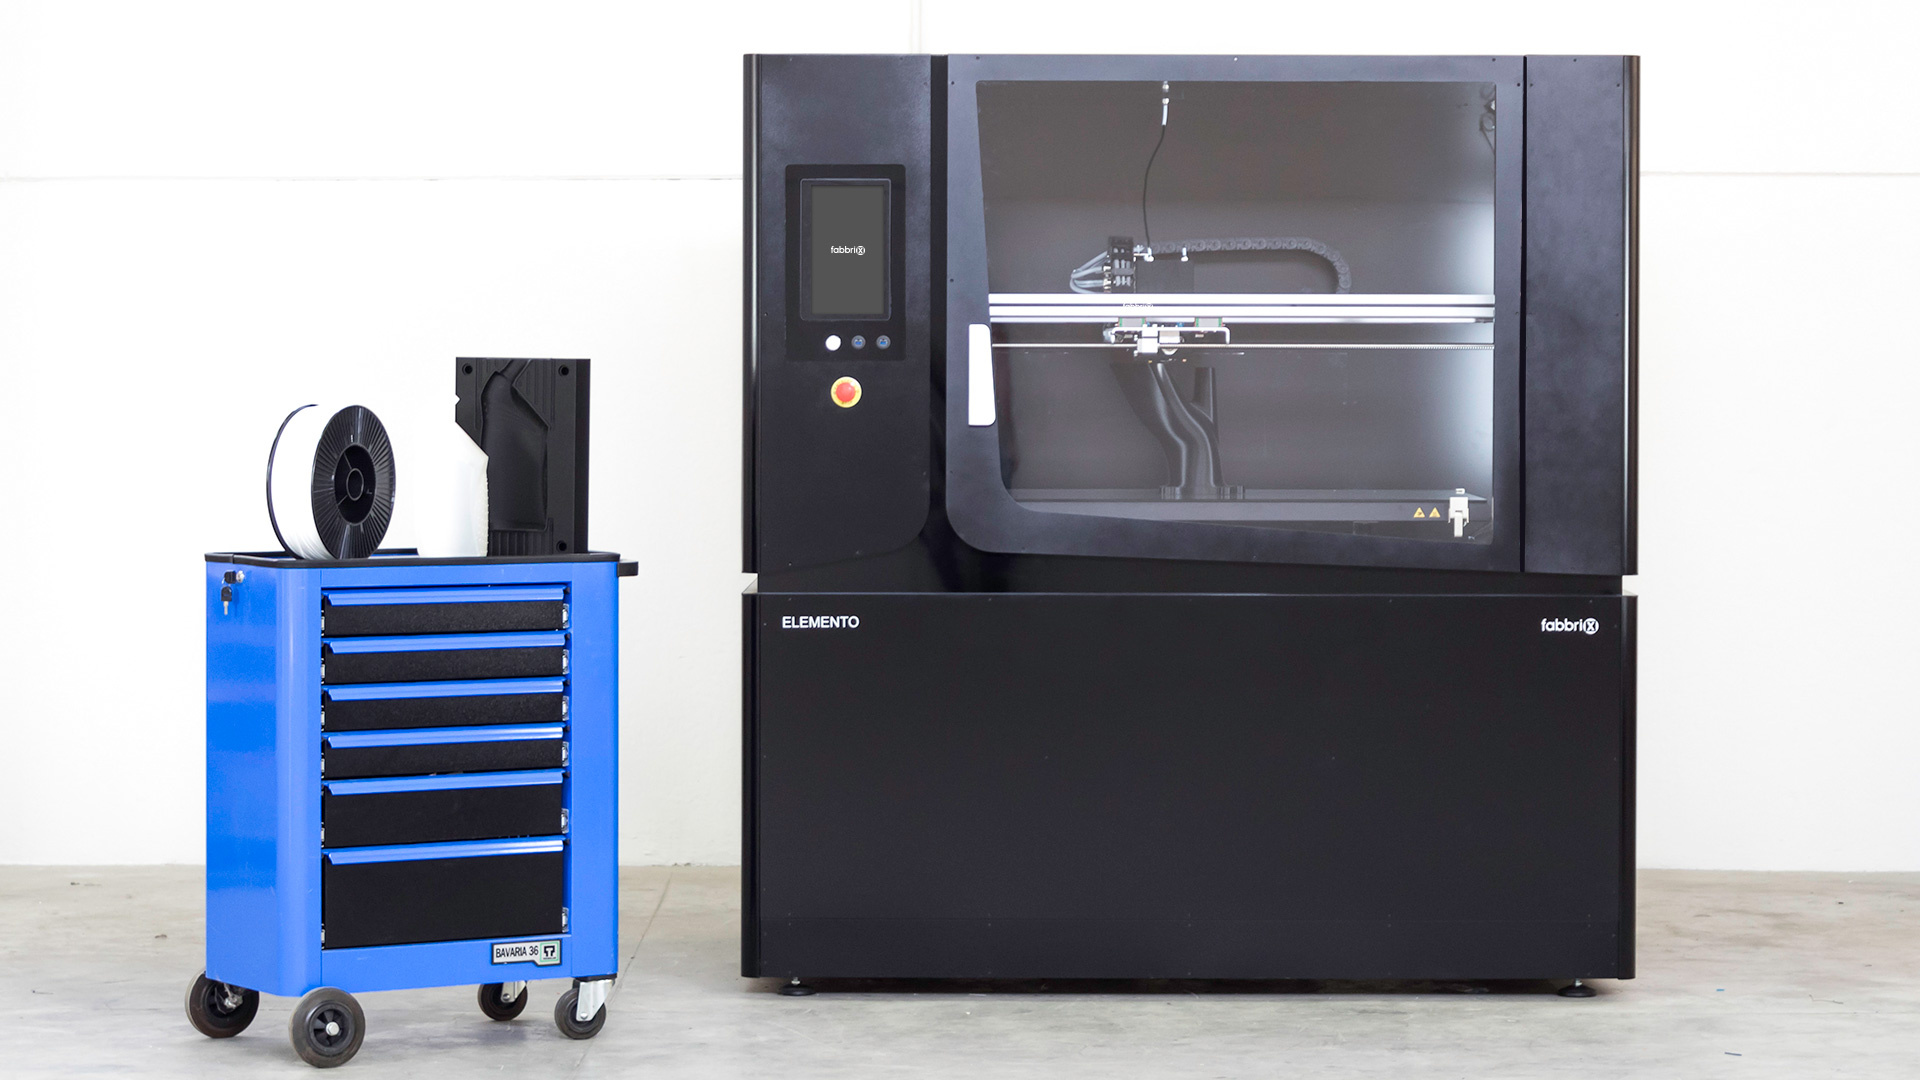 Fabbrix debuts the ELEMENTO V2 3D printer - technical specs and pricing